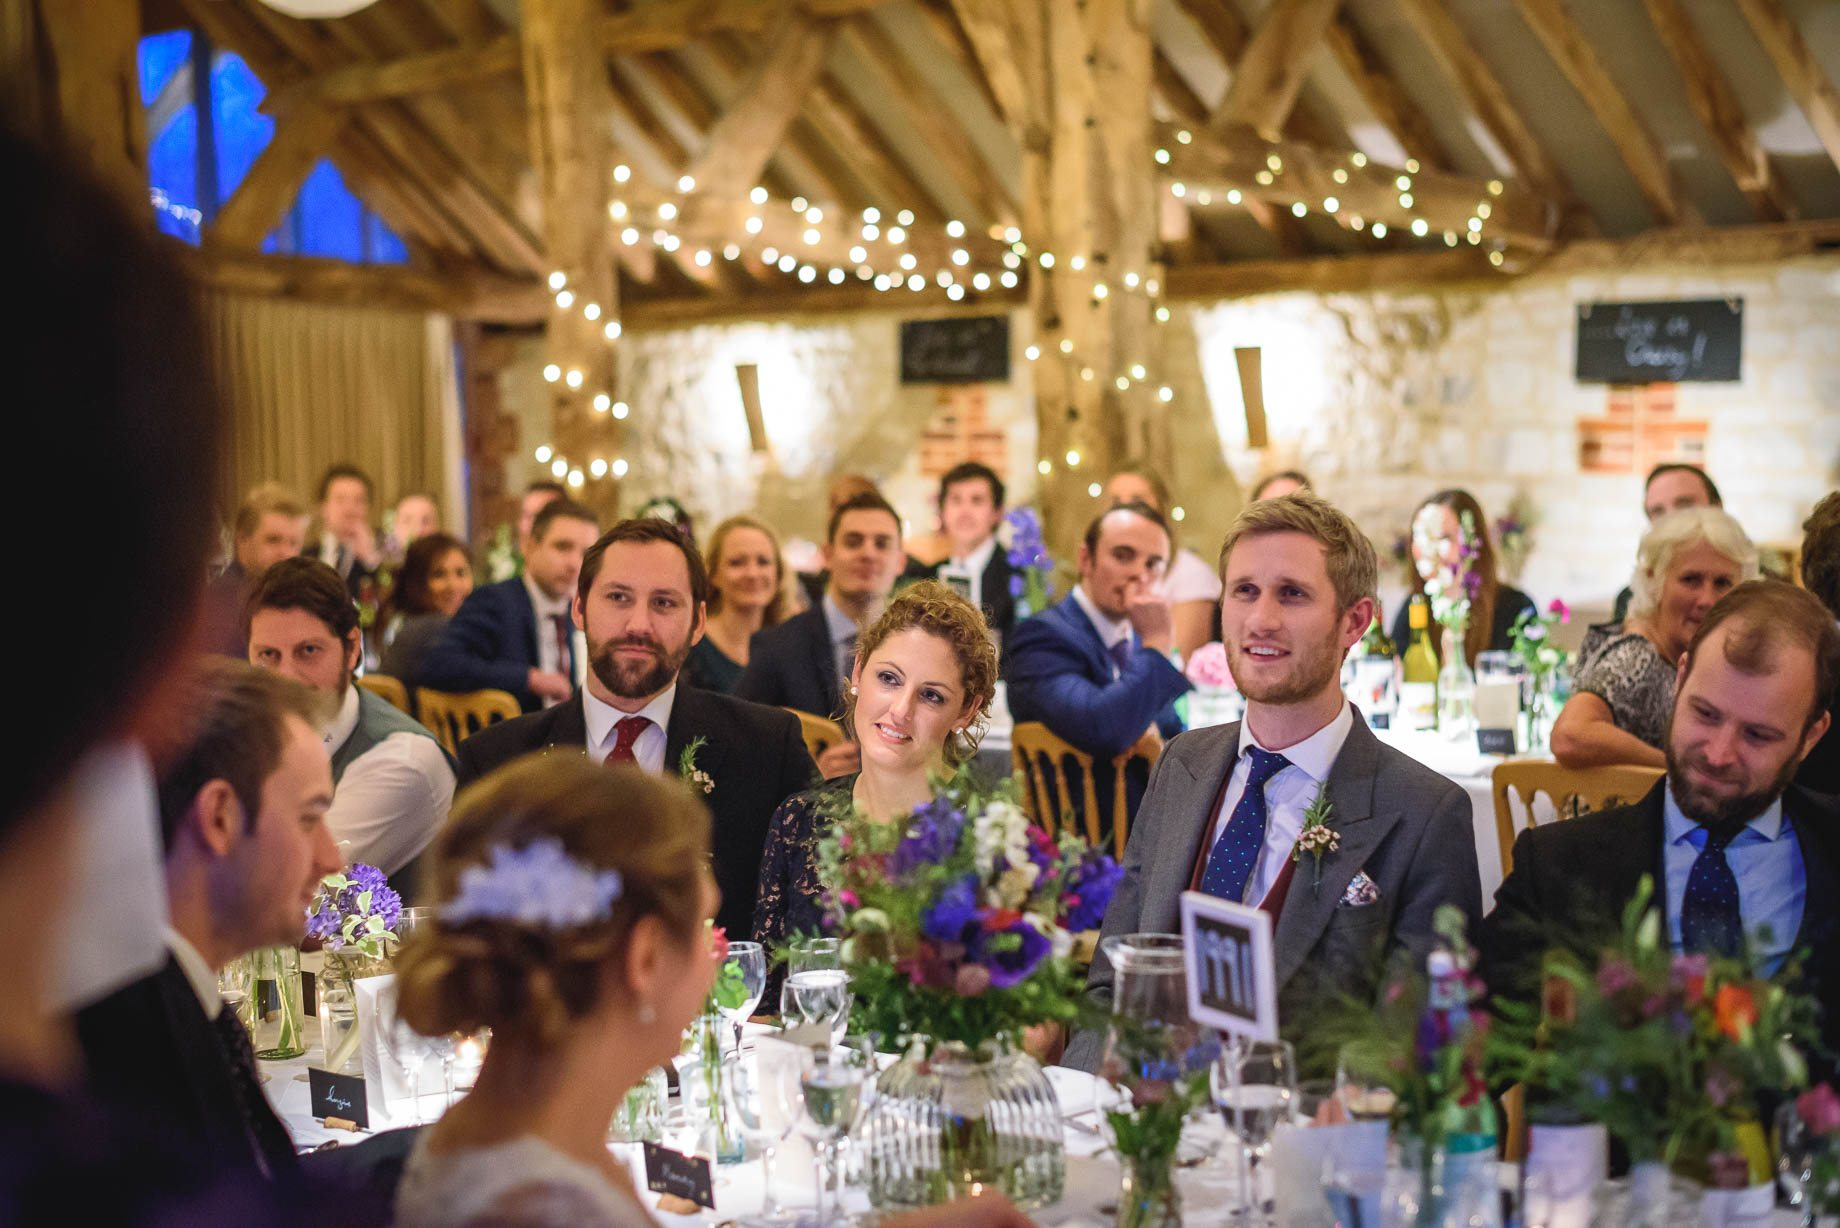 Bury Court Barn wedding photography - Ashley and Henry by Guy Collier Photography (137 of 188)